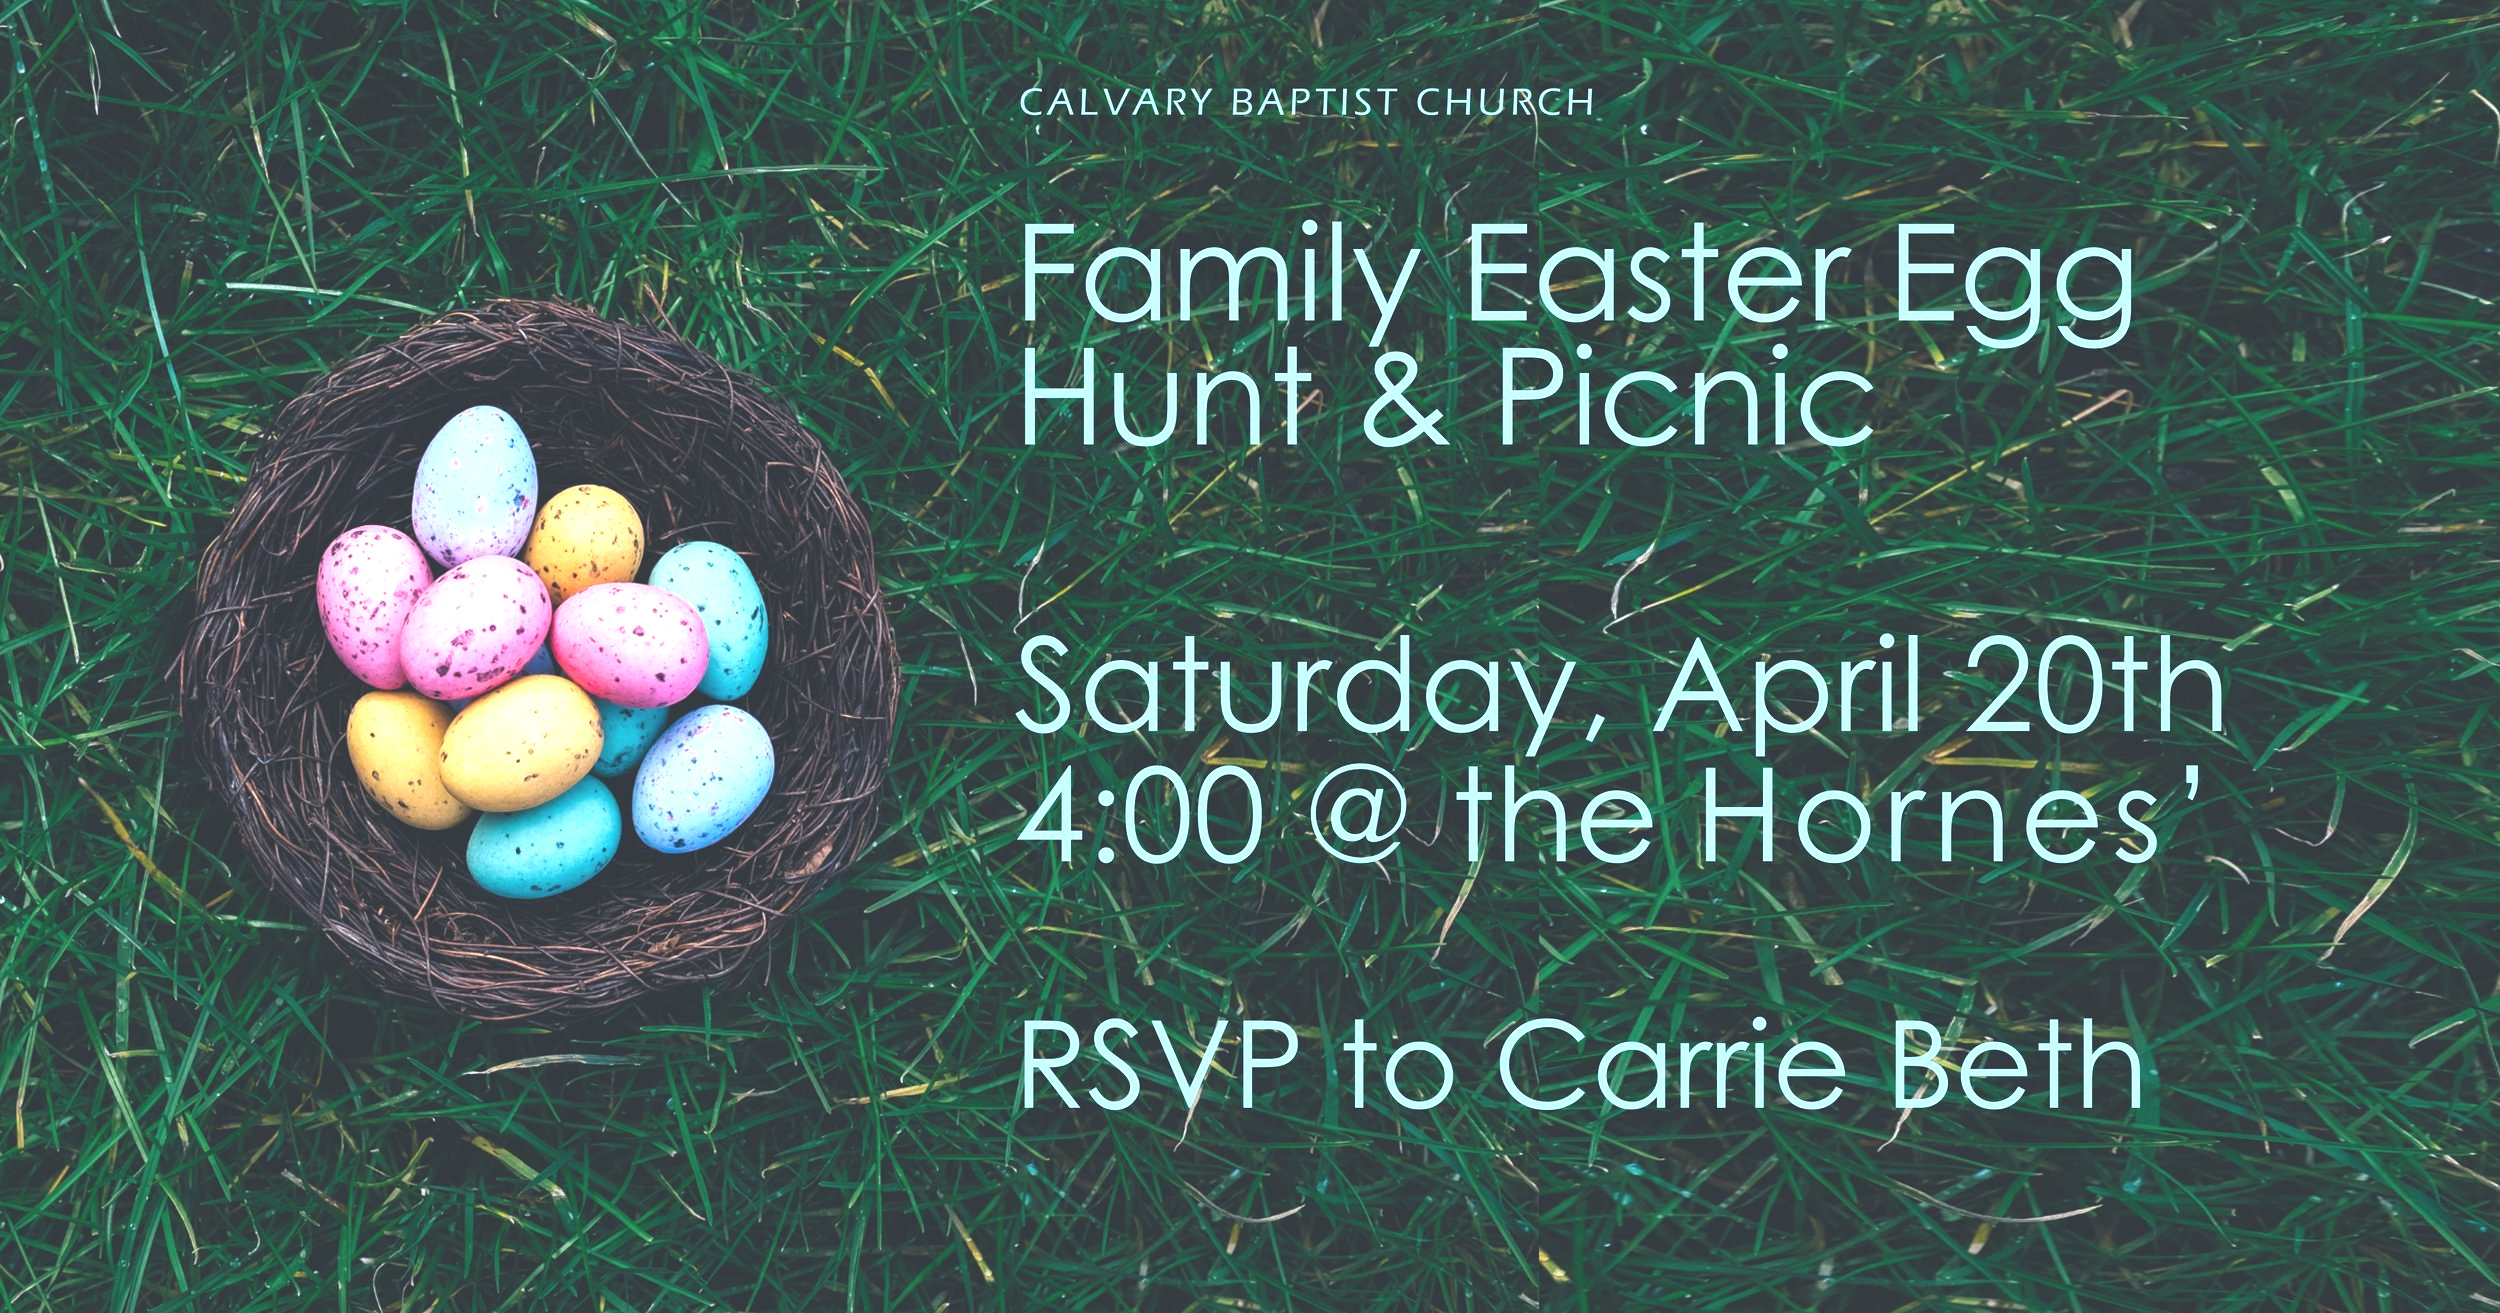 egg+hunt+picnic+fb+032019.jpg